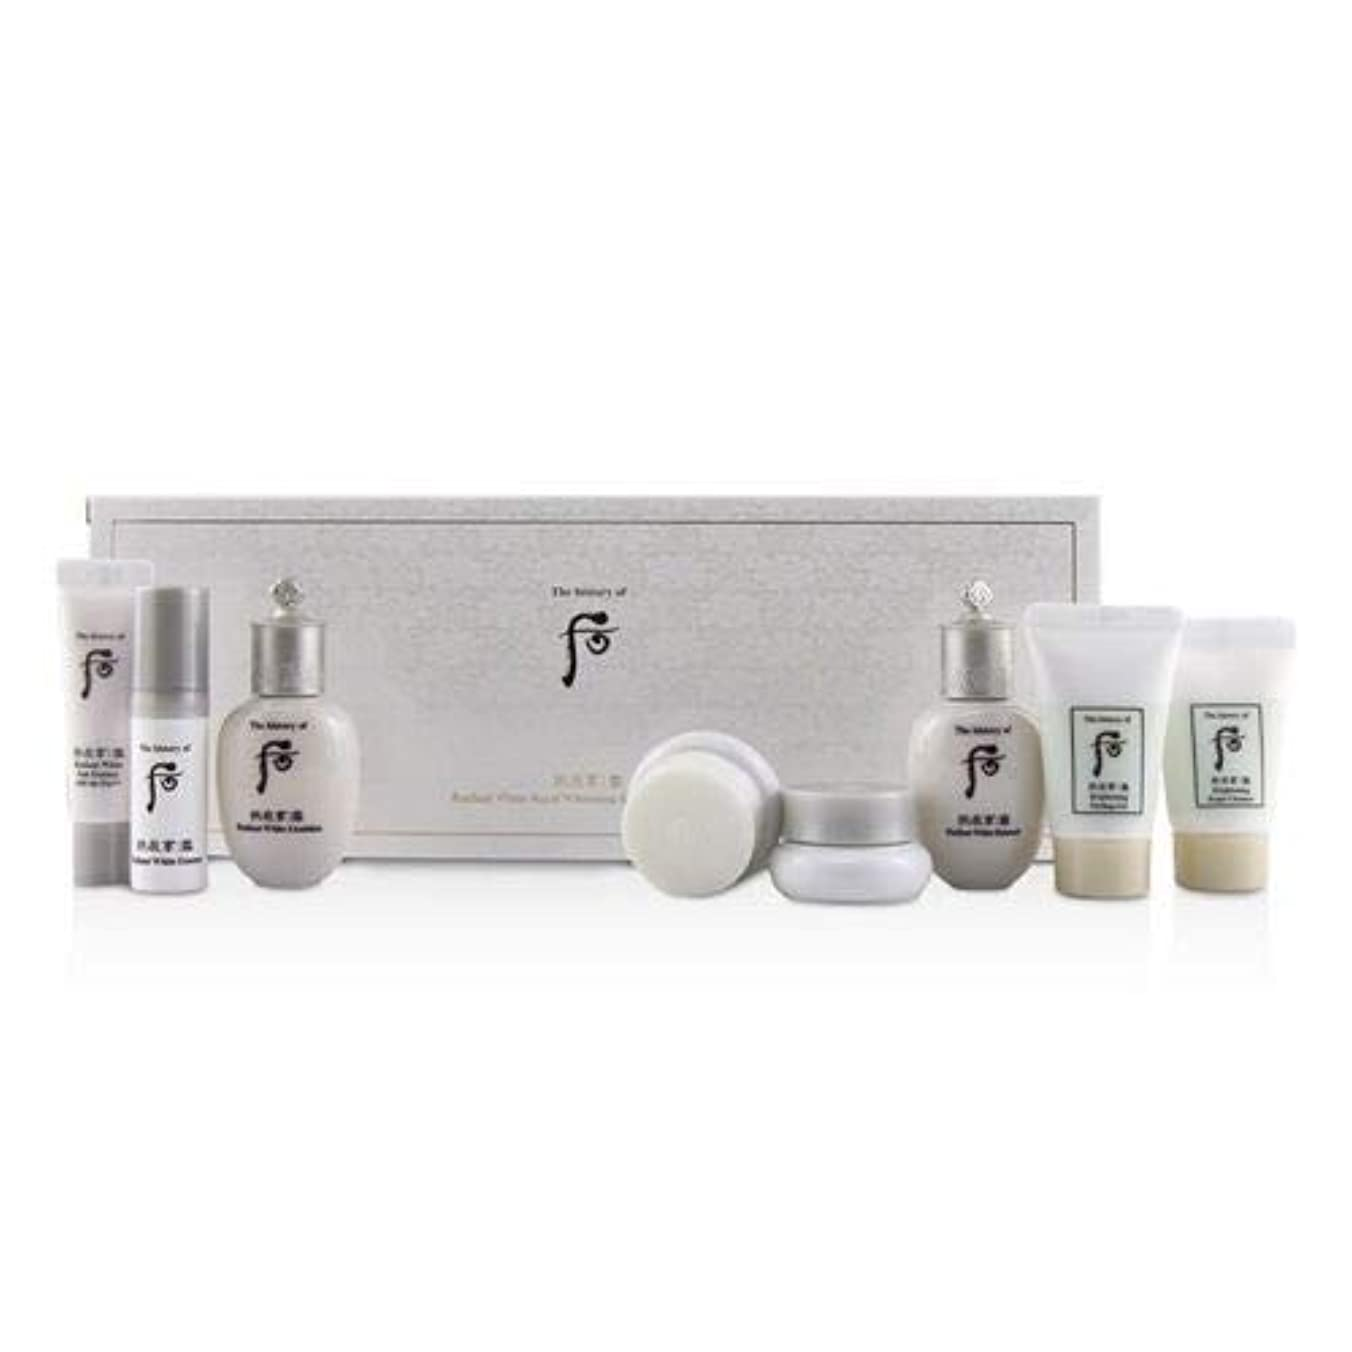 怠なそよ風公平な后 (The History Of 后) Gongjinhyang Seol Radiant Whitening 8 pcs Gift Set: Balancer 20ml + Emulsion 20ml + Essence 5ml + Mo 8pcs並行輸入品